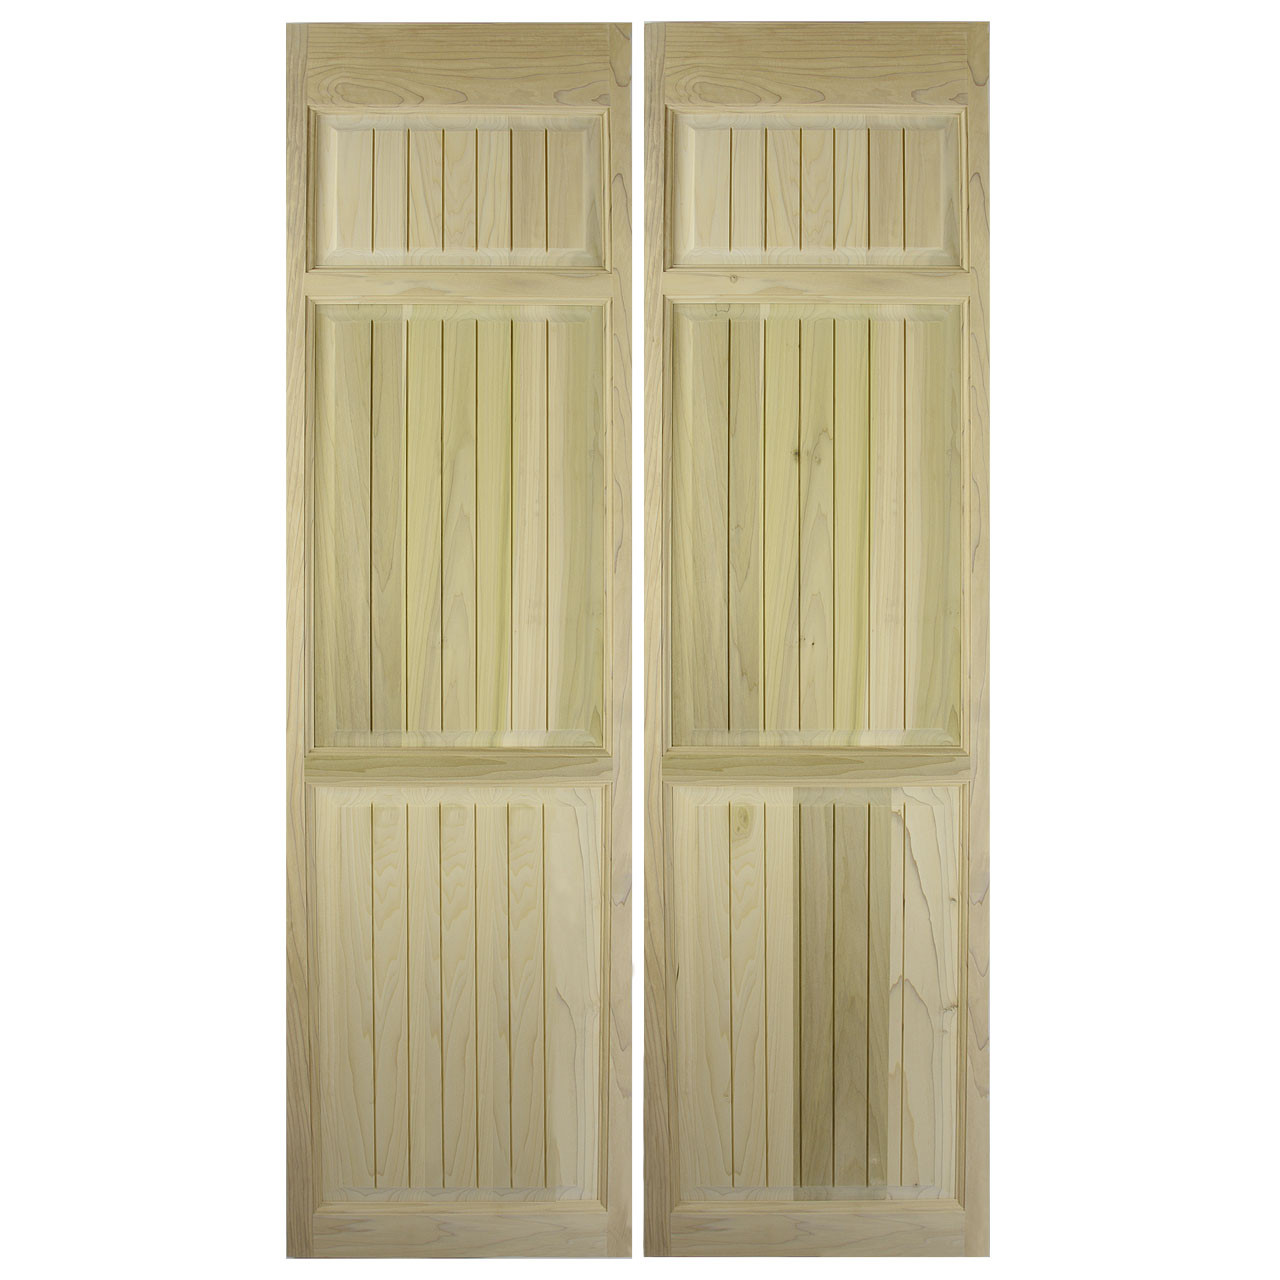 Custom Full Length Solid Poplar Beadboard Swinging Cafe Doors